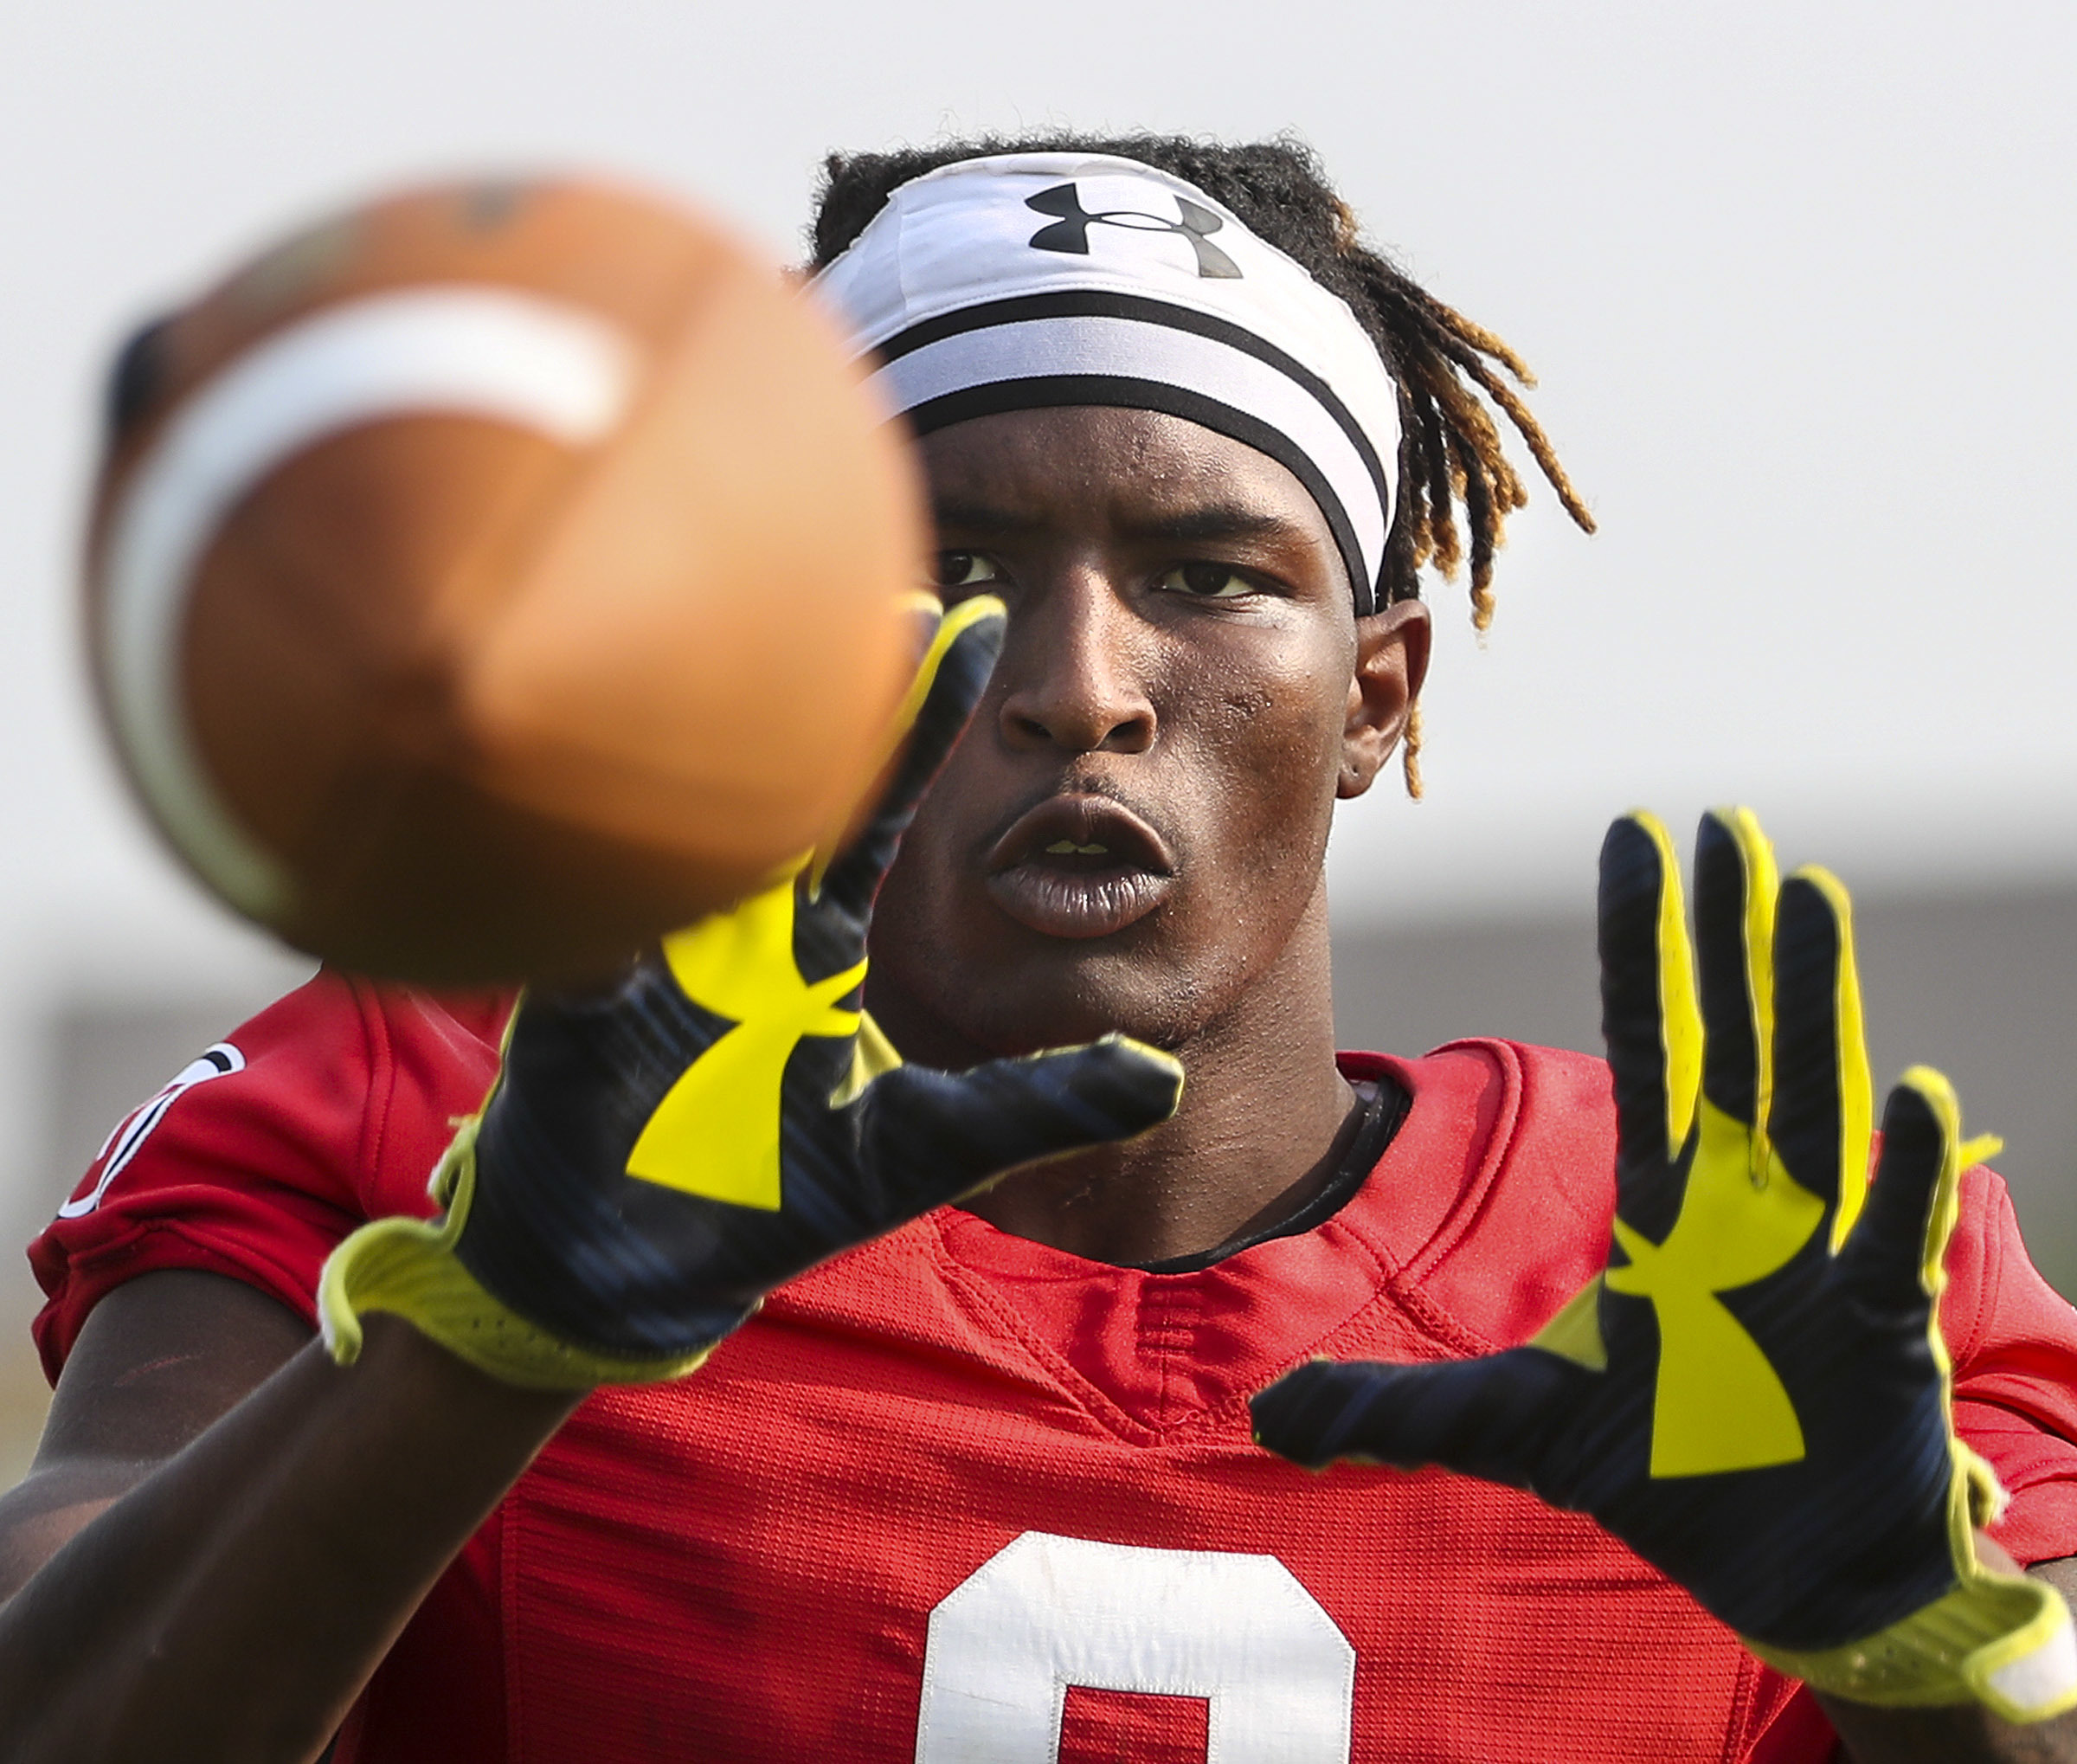 Utah receiver Siaosi Mariner catches balls thrown at him from a JUGS machine following on Thursday, Aug. 23, 2018. Mariner transferred to Utah State.